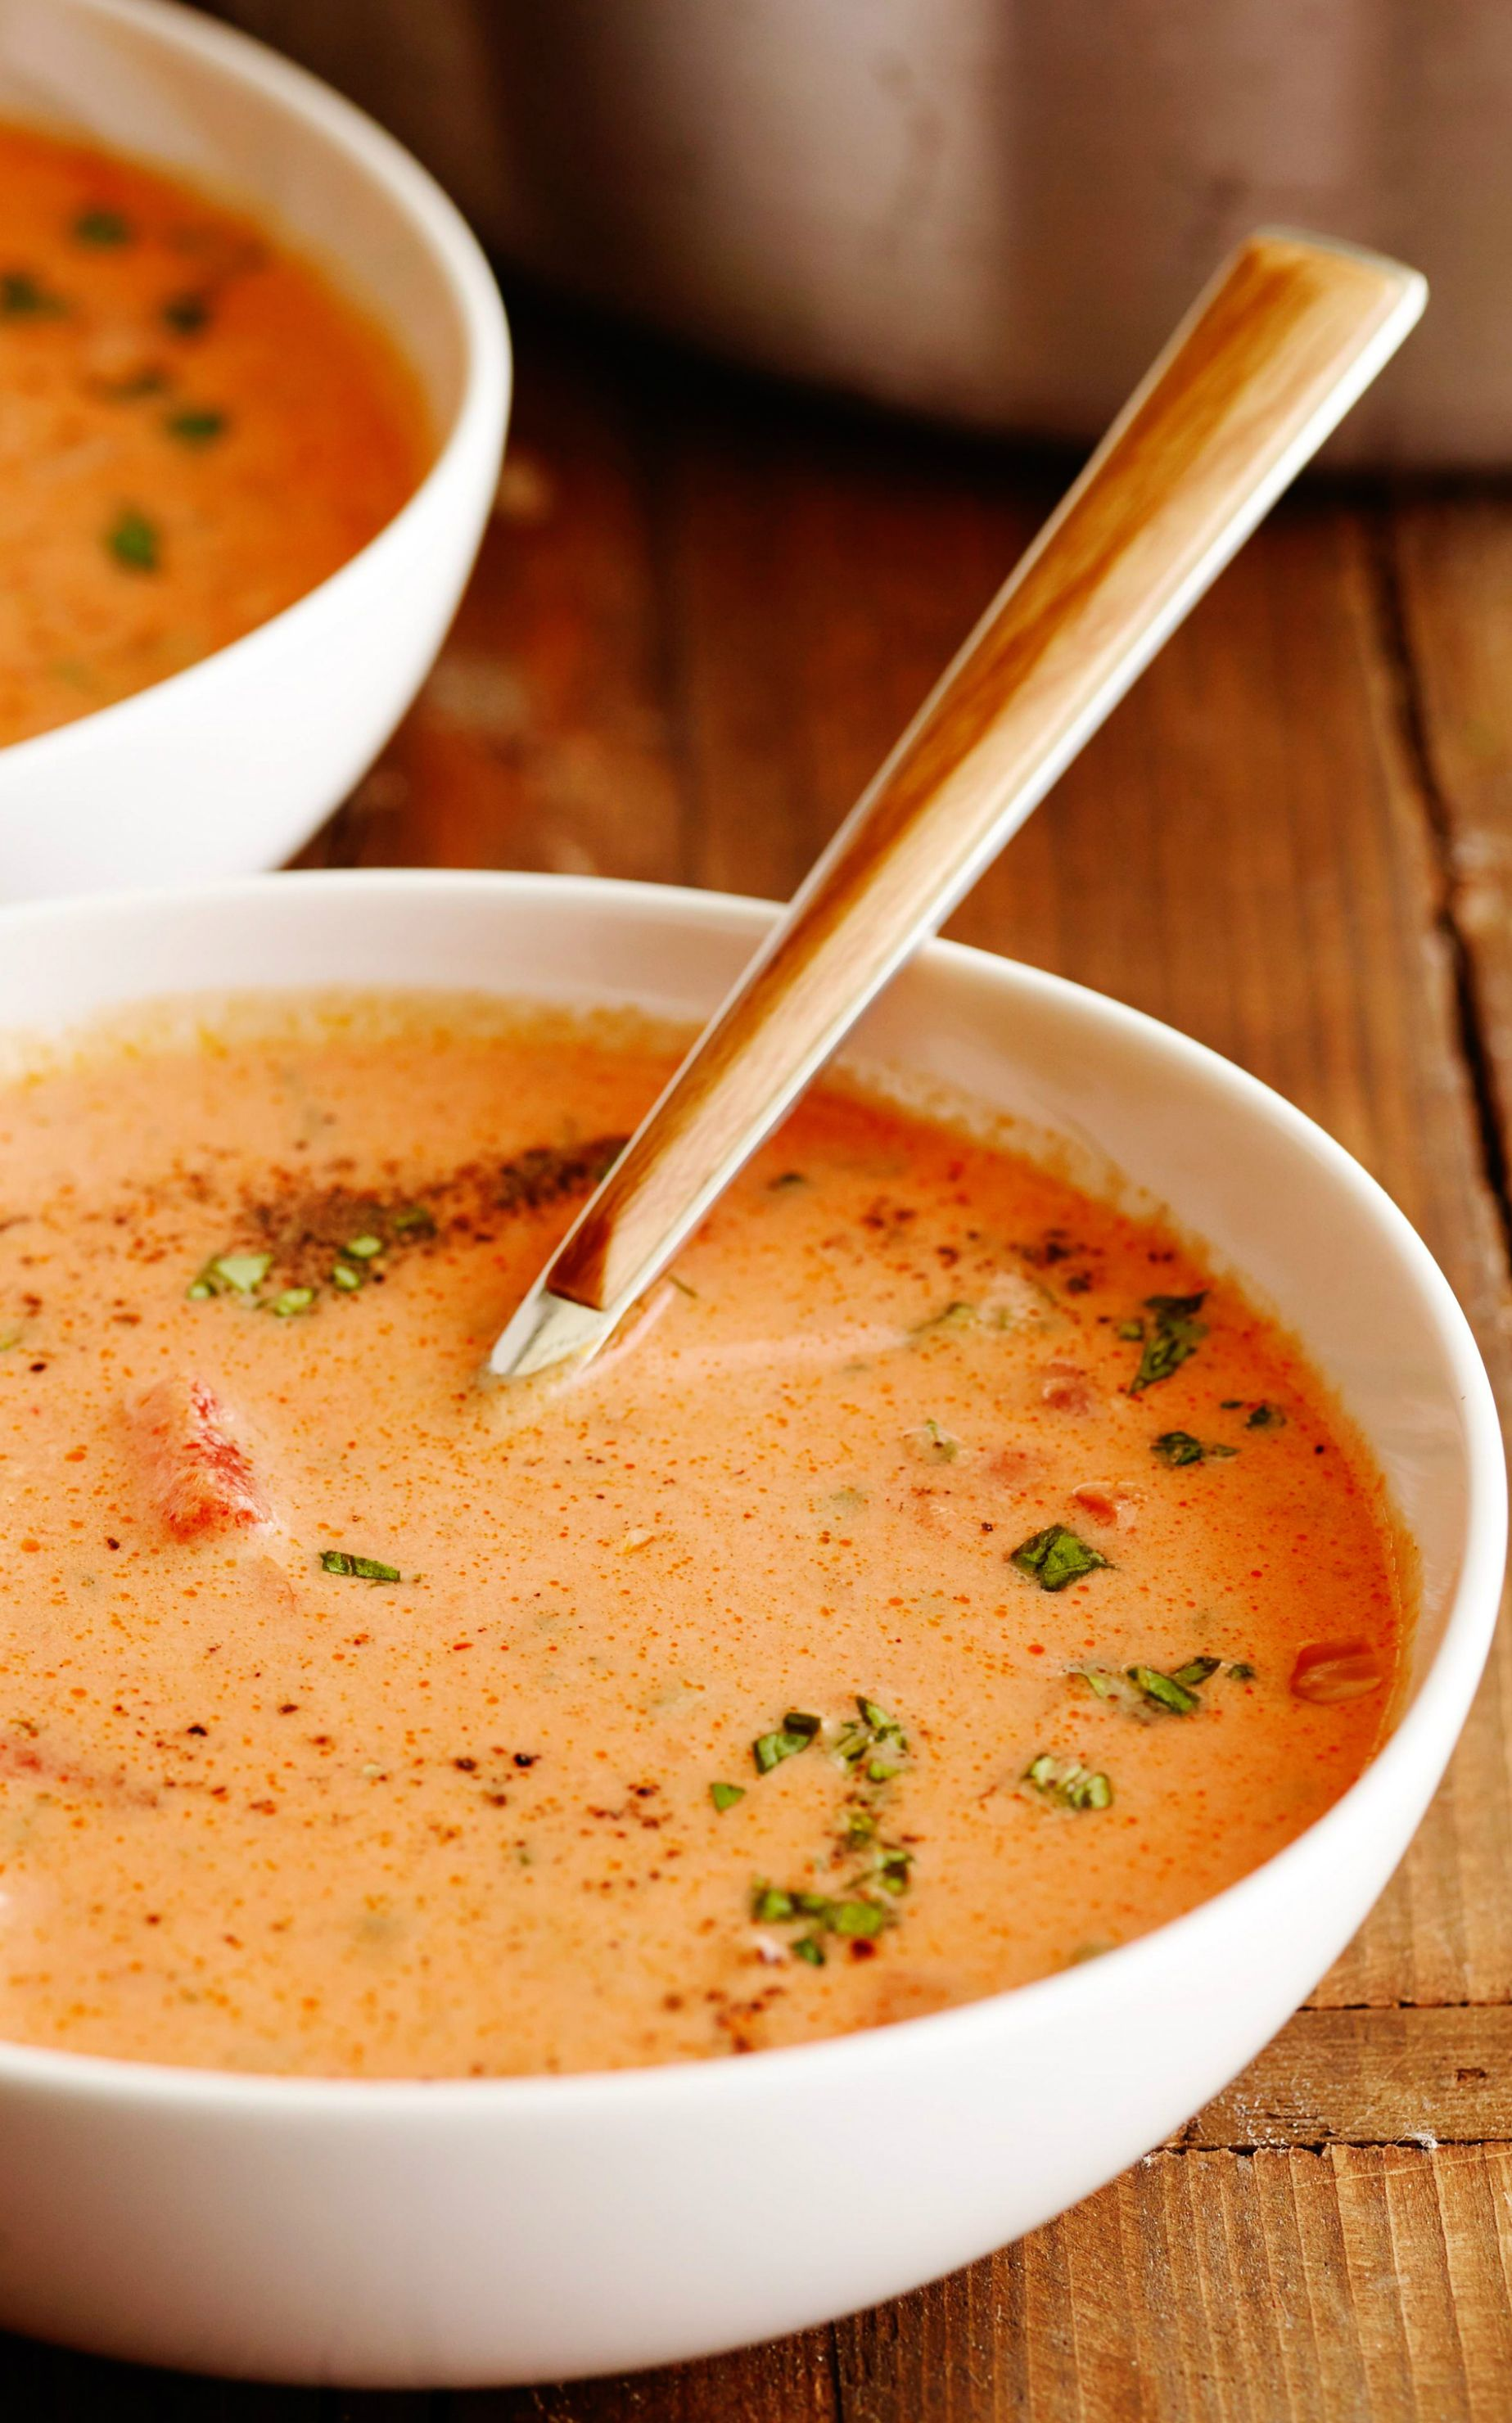 Best Tomato Soup Ever Ree Drummond Food Network Best Tomato Soup Food Network Recipes Soup Recipes